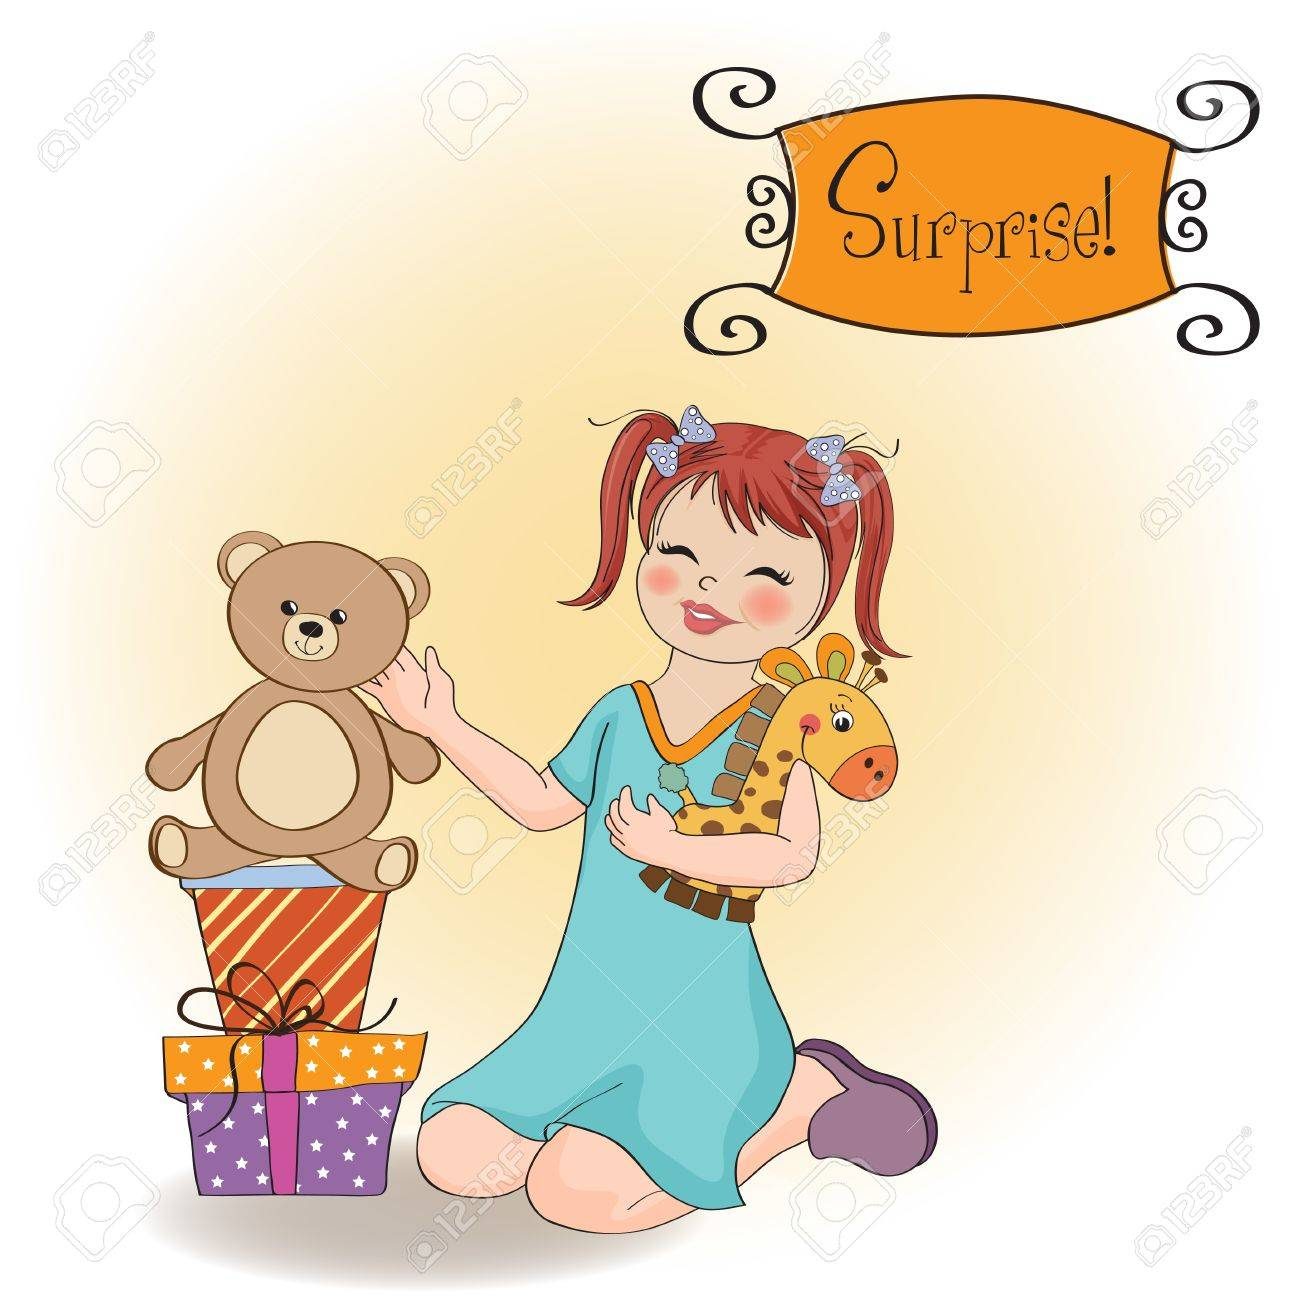 Little Girl Playing With Her Birthday Gifts Happy Birthday Card Royalty Free Cliparts Vectors And Stock Illustration Image 12786870